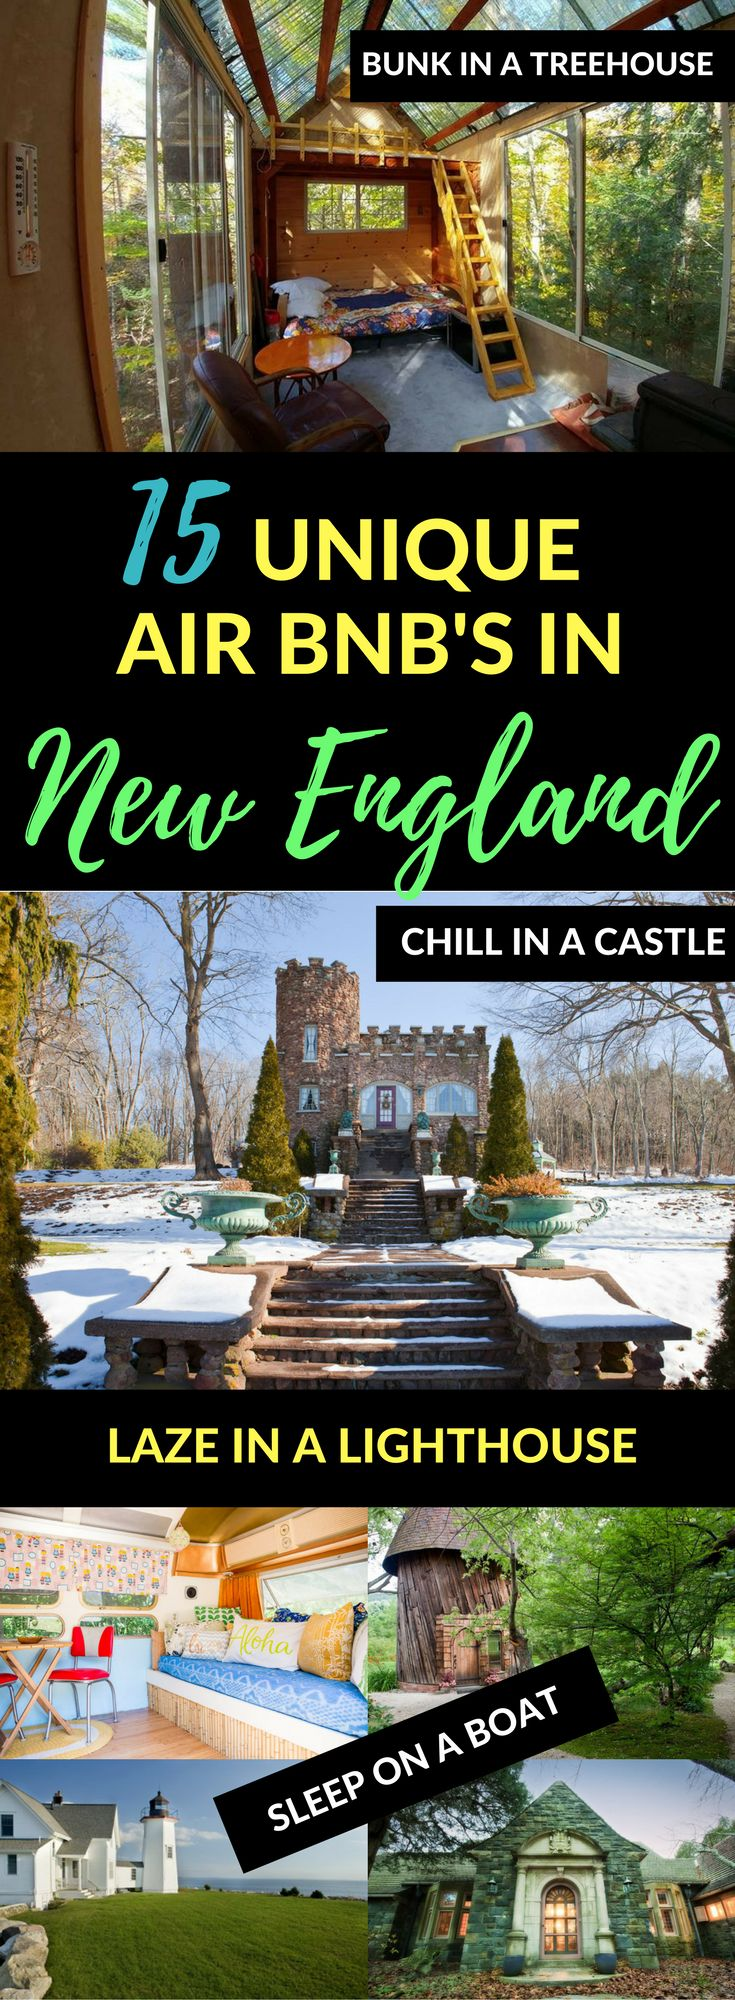 New England has so many incredible AirBnb properties! Want to stay in a treehouse, tiny house, or even a castle? From the romantic to the quirky, New England vacation rentals don't get much better than these.   Vacation rentals Vermont New Hampshire Massachussetts Maine Rhode Island Connecticut